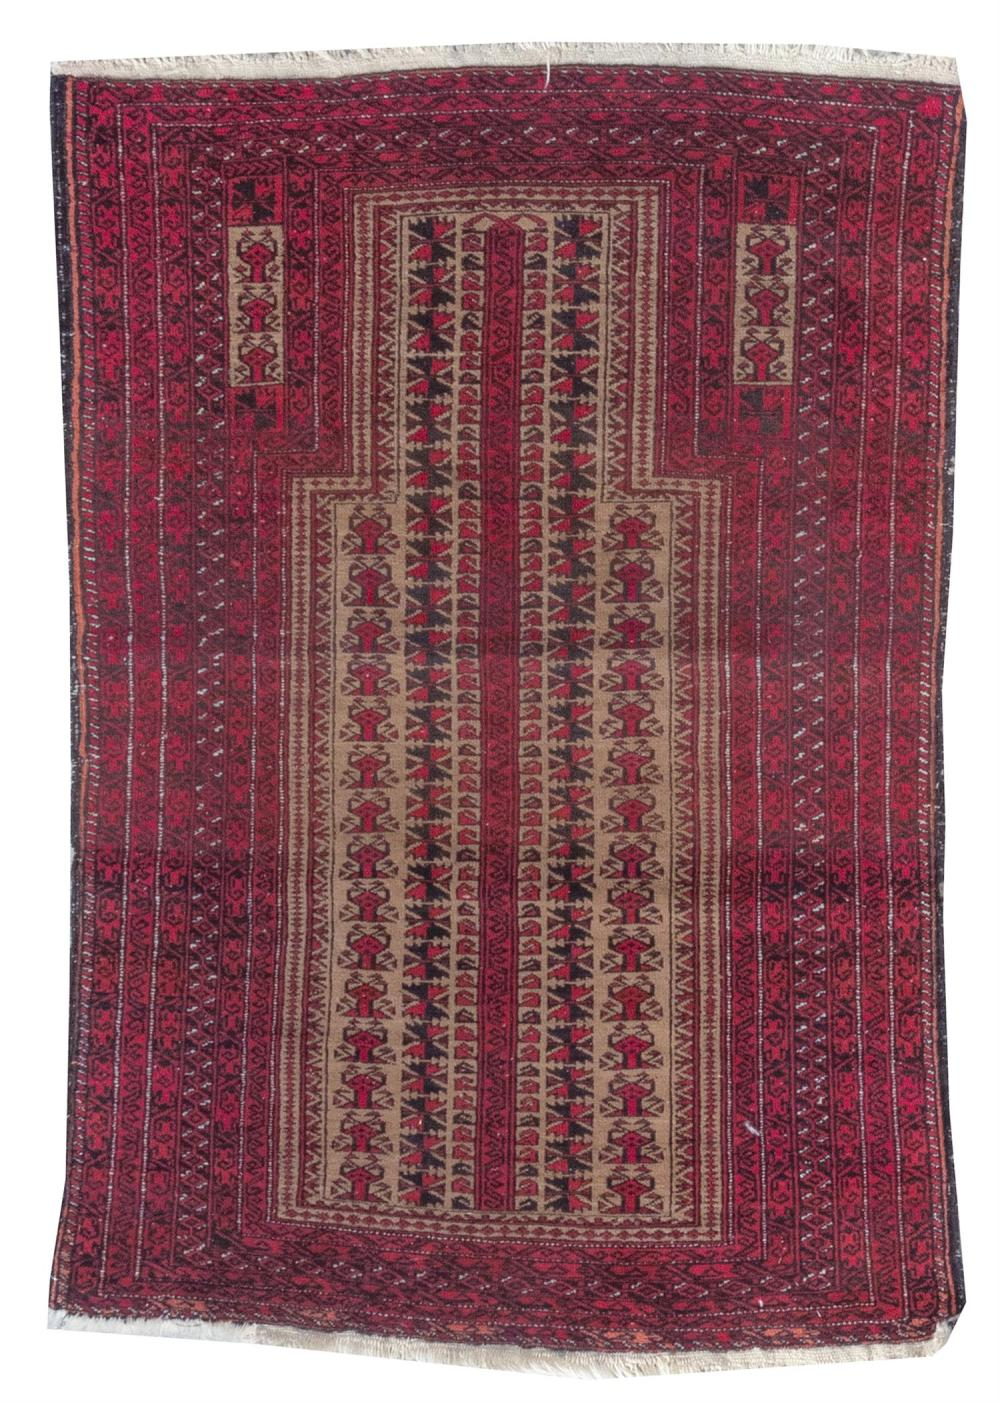 "ORIENTAL RUG: BELOUCH PRAYER 2'11"" x 4'4"" Tan geometric field and mihrab traversed by columns of black and dark red traditional styl."